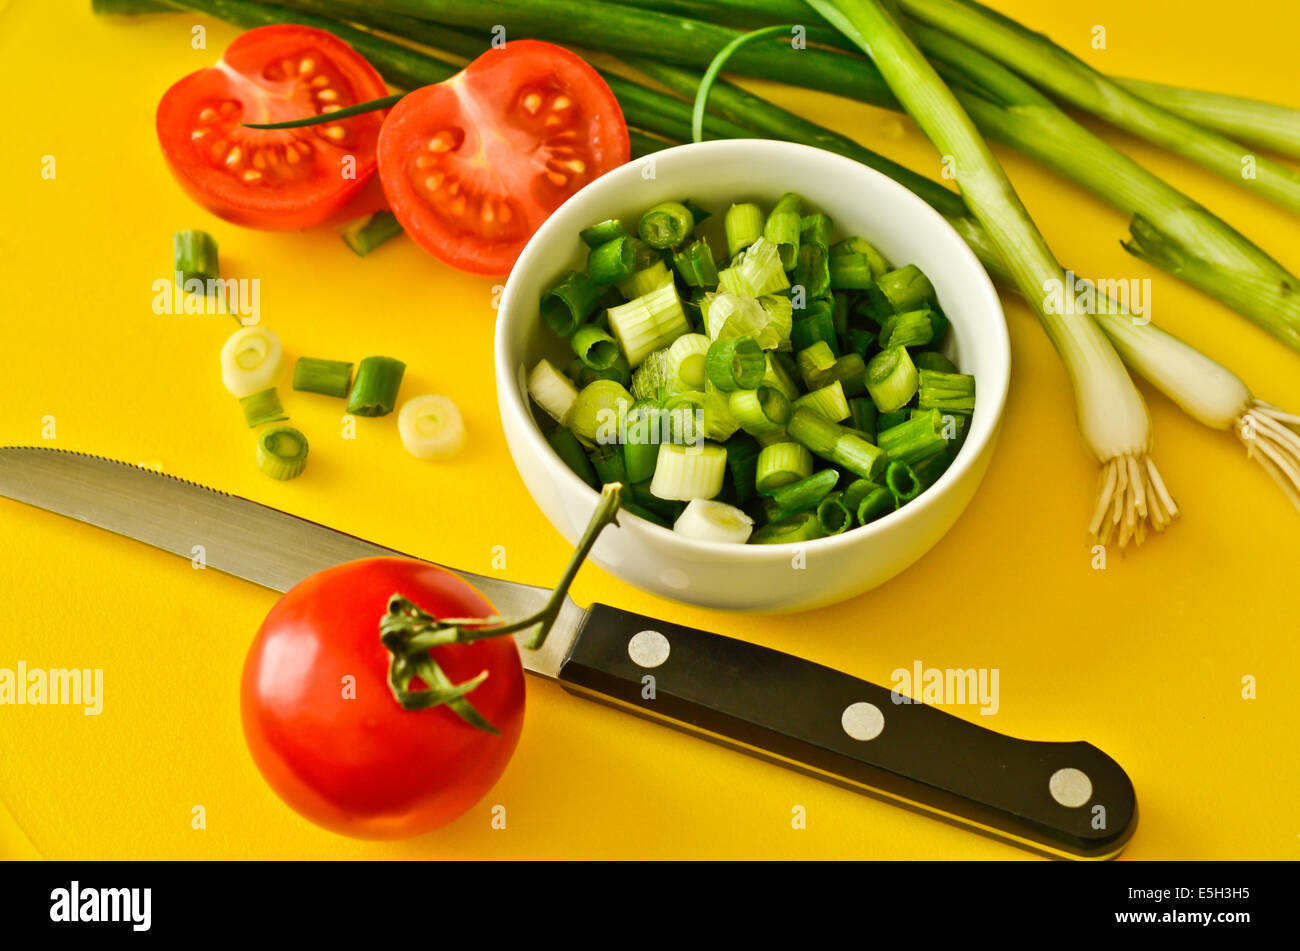 Fresh vegetables on a cutting board with a knife - Stock Image